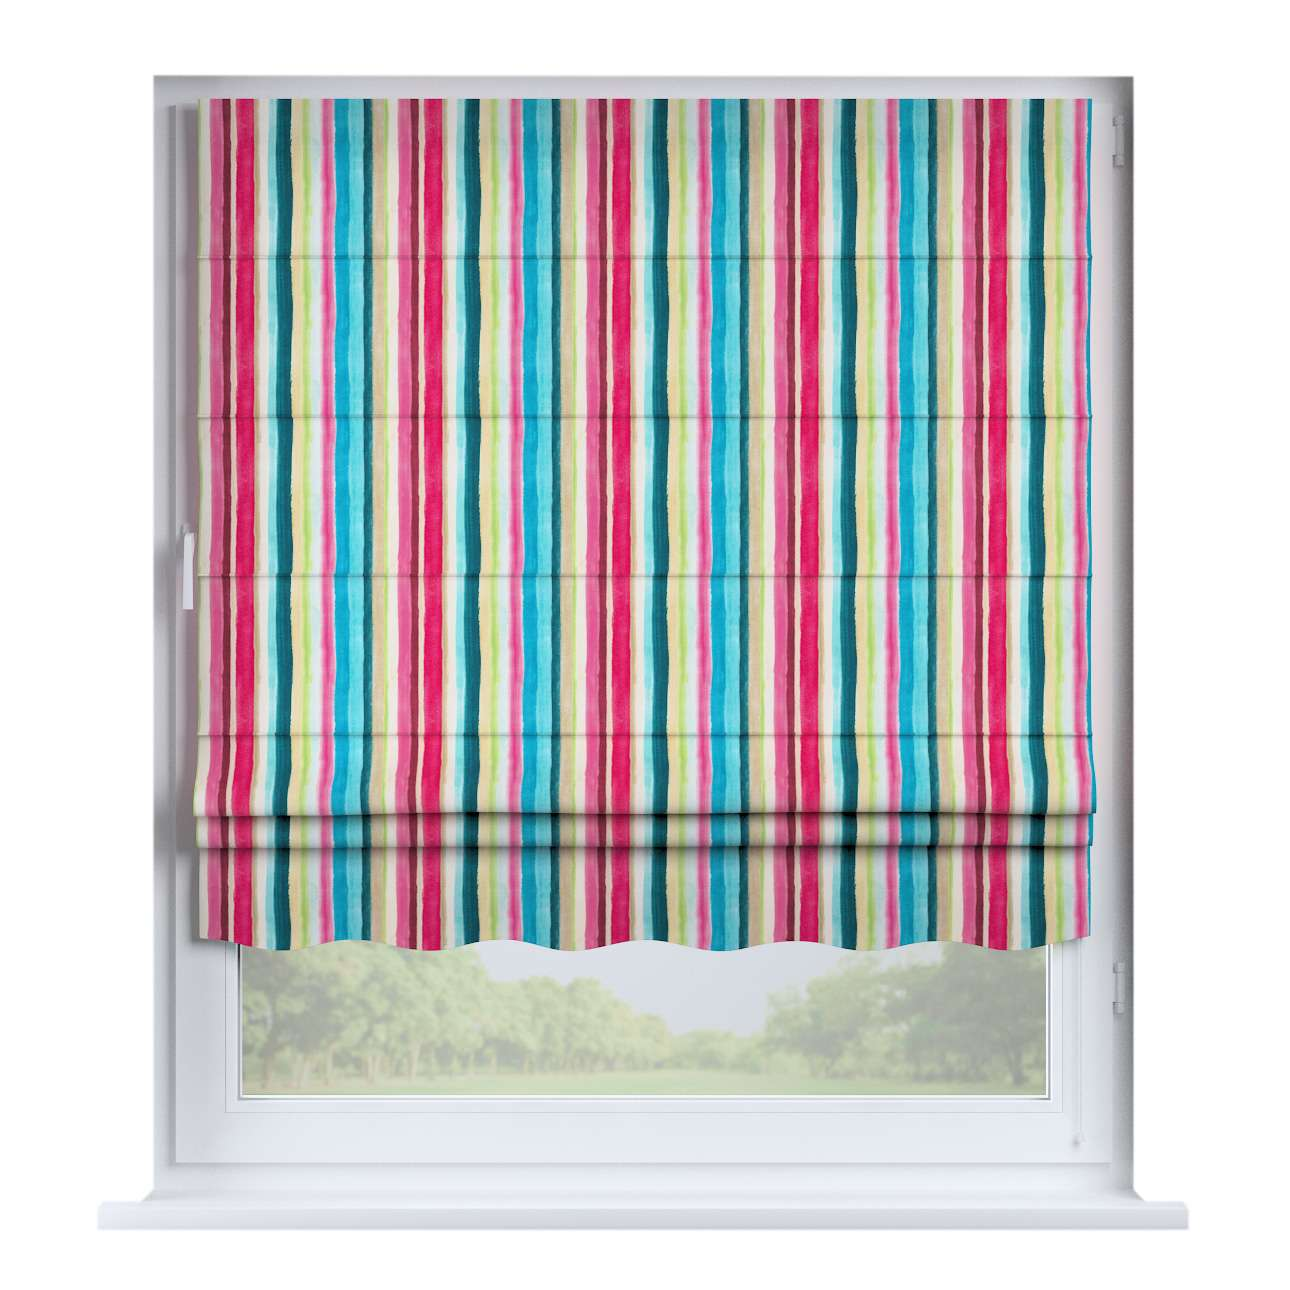 Florence roman blind  80 × 170 cm (31.5 × 67 inch) in collection Monet, fabric: 140-09